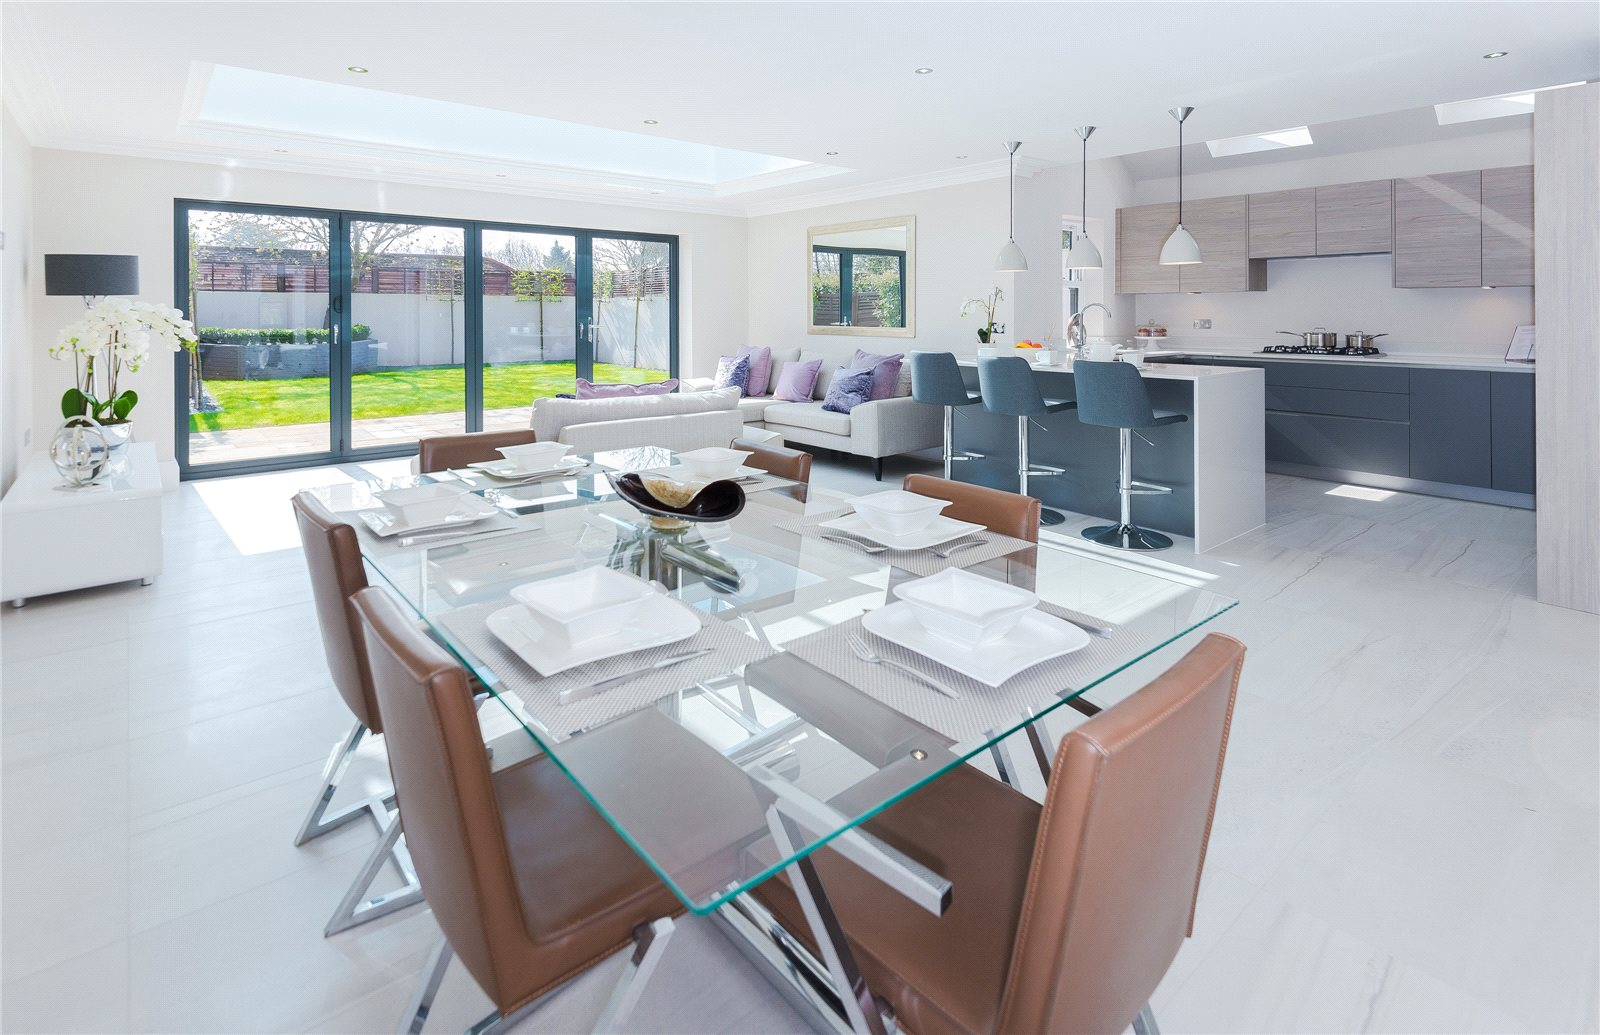 Single Family Home for Sale at Stag House, Hawthorne Lane, Farnham Common, Buckinghamshire, SL2 Farnham Common, England